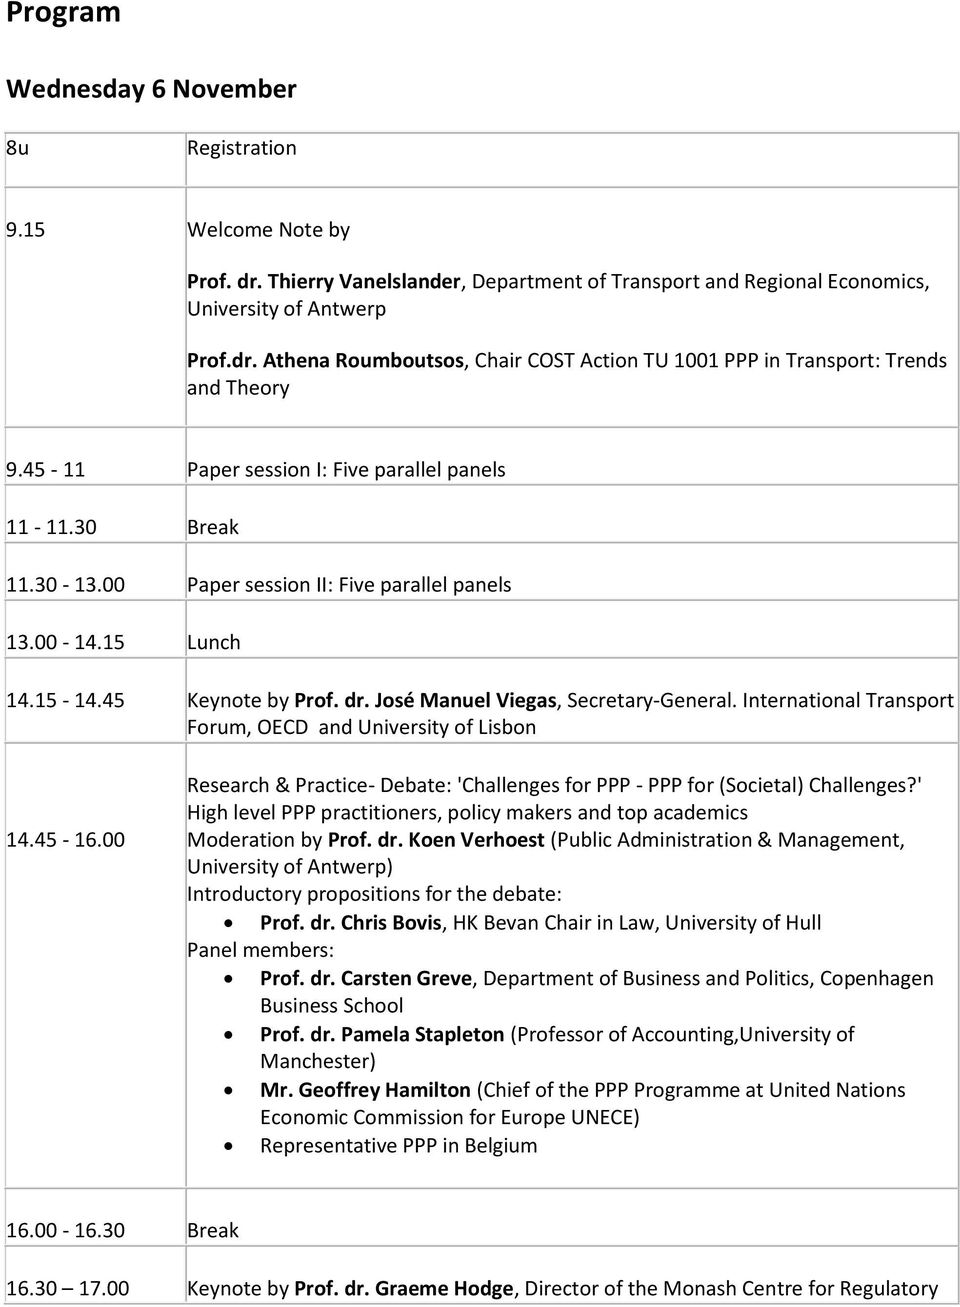 International Transport Forum, OECD and University of Lisbon 14.45-16.00 Research & Practice- Debate: 'Challenges for PPP - PPP for (Societal) Challenges?